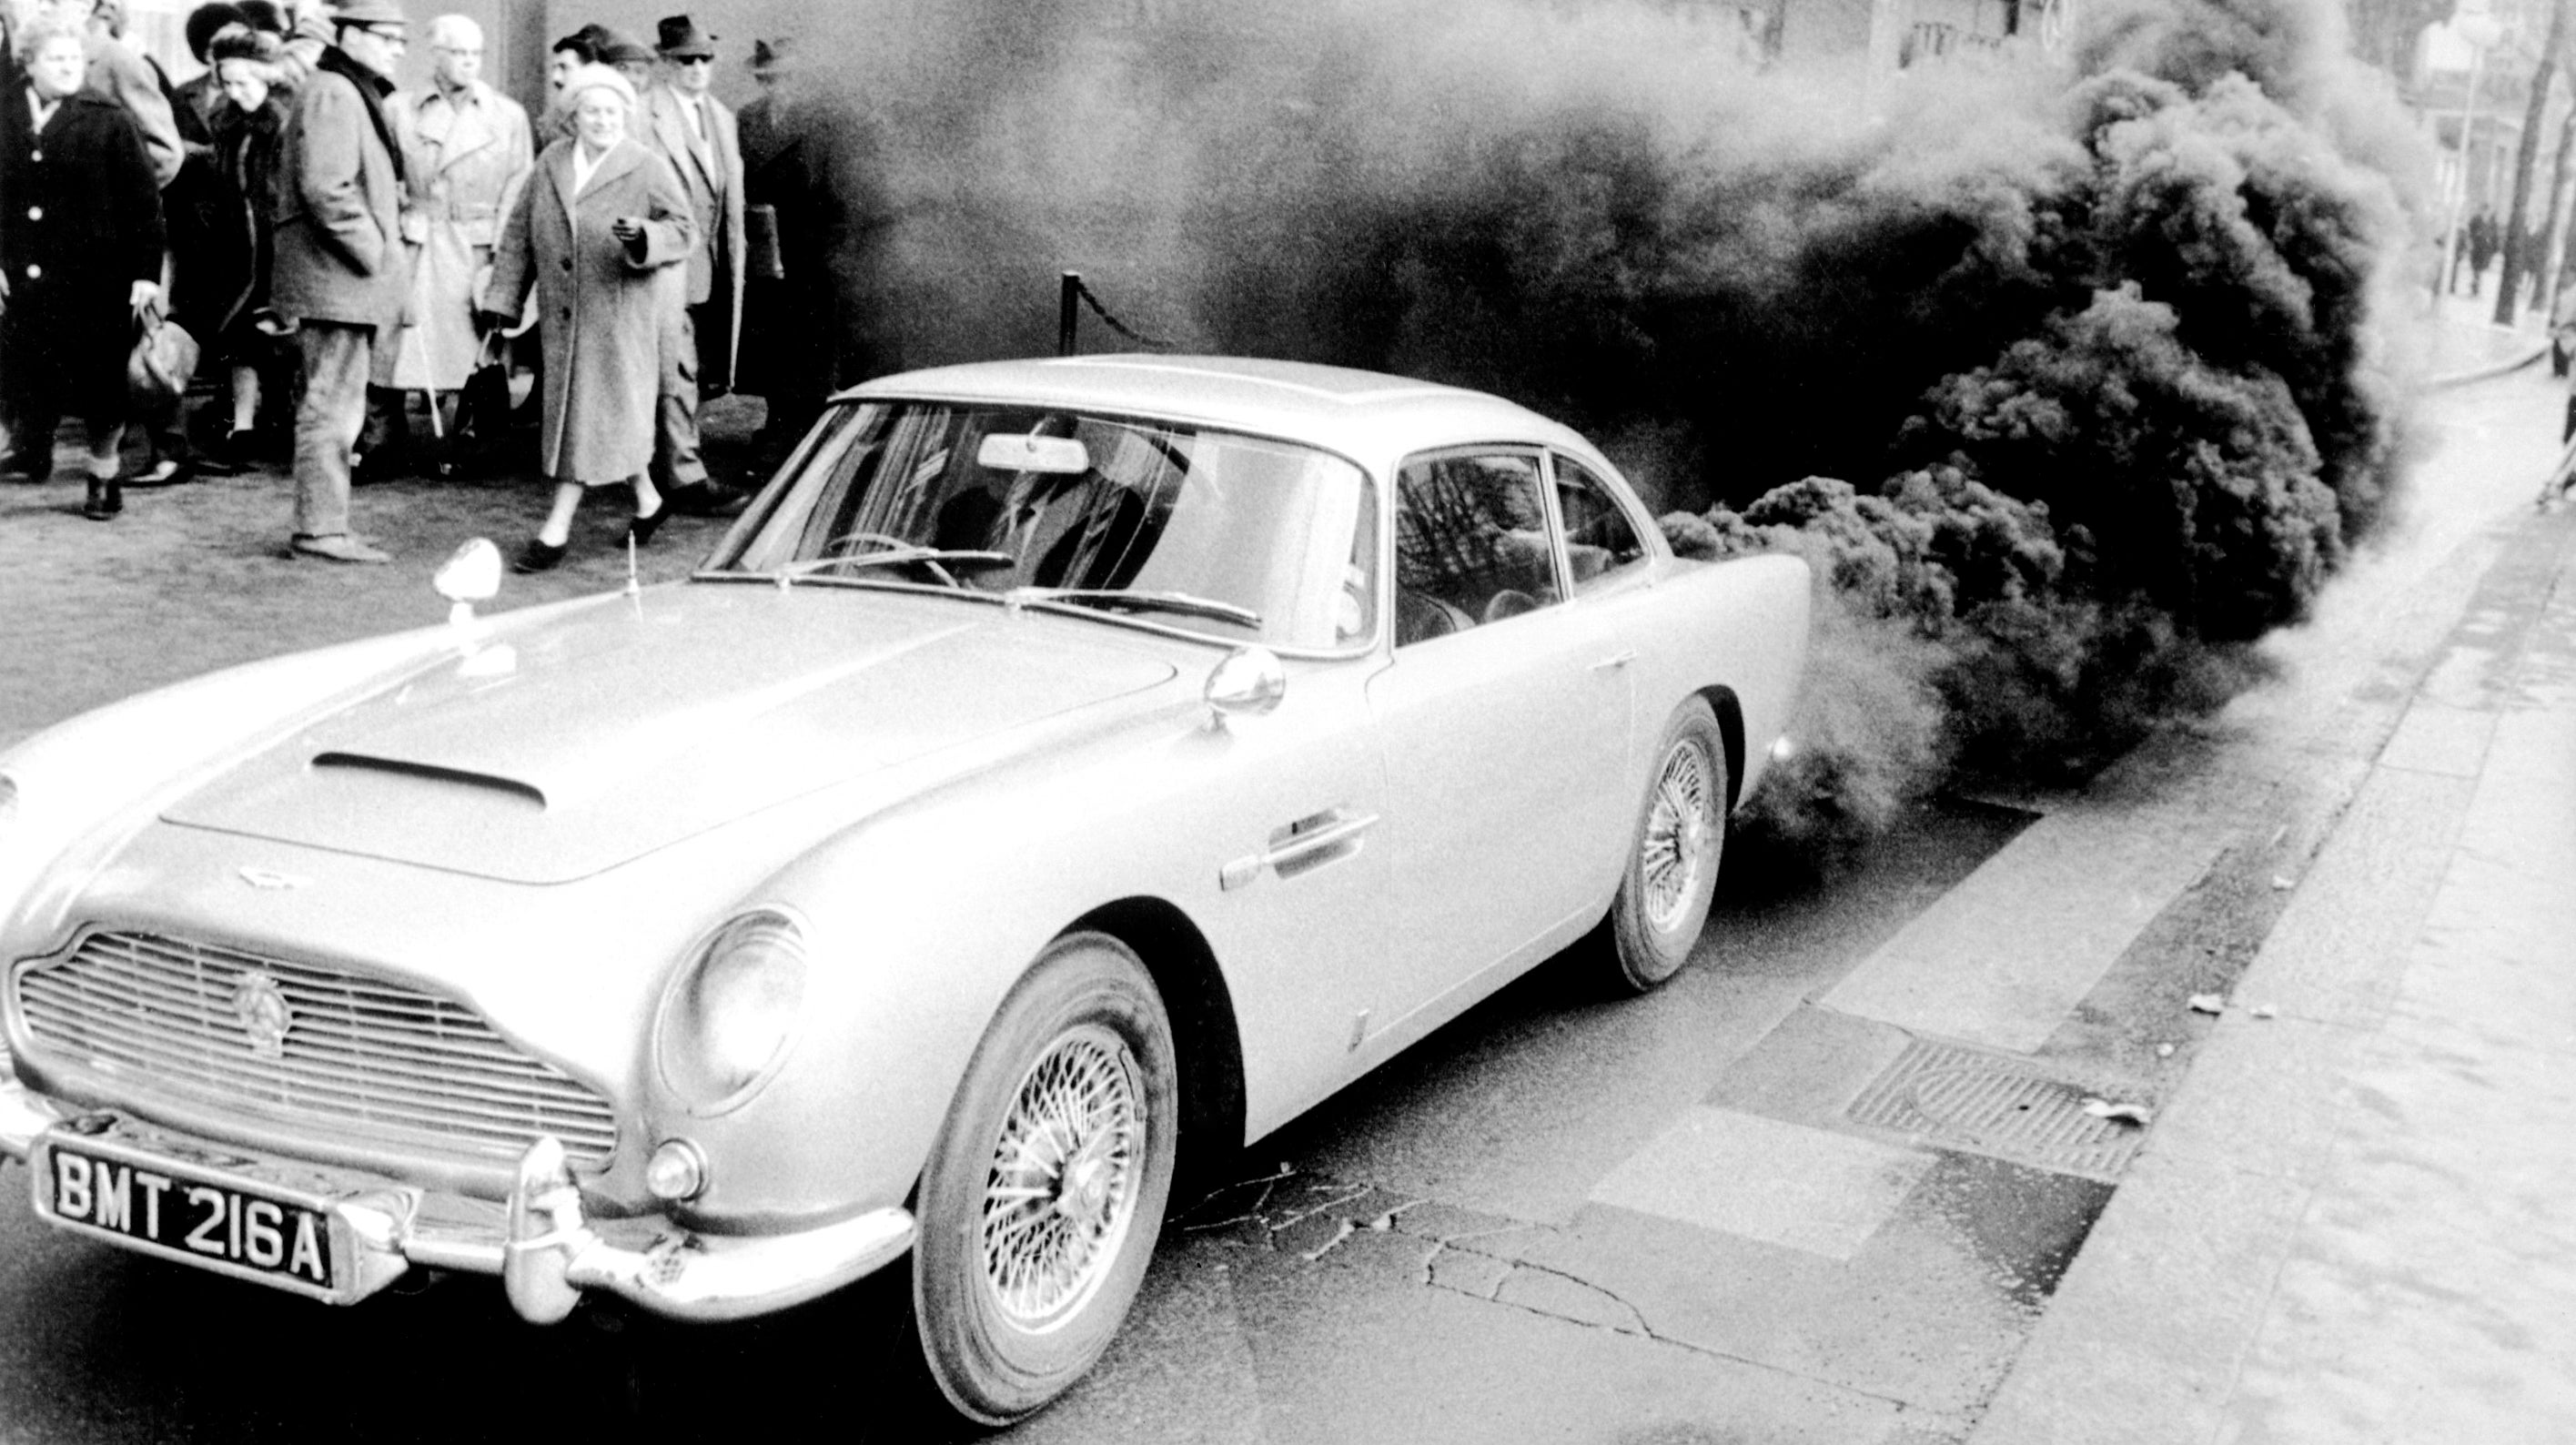 The Stolen Aston Martin DB5 From Goldfinger Might Be In The Middle East